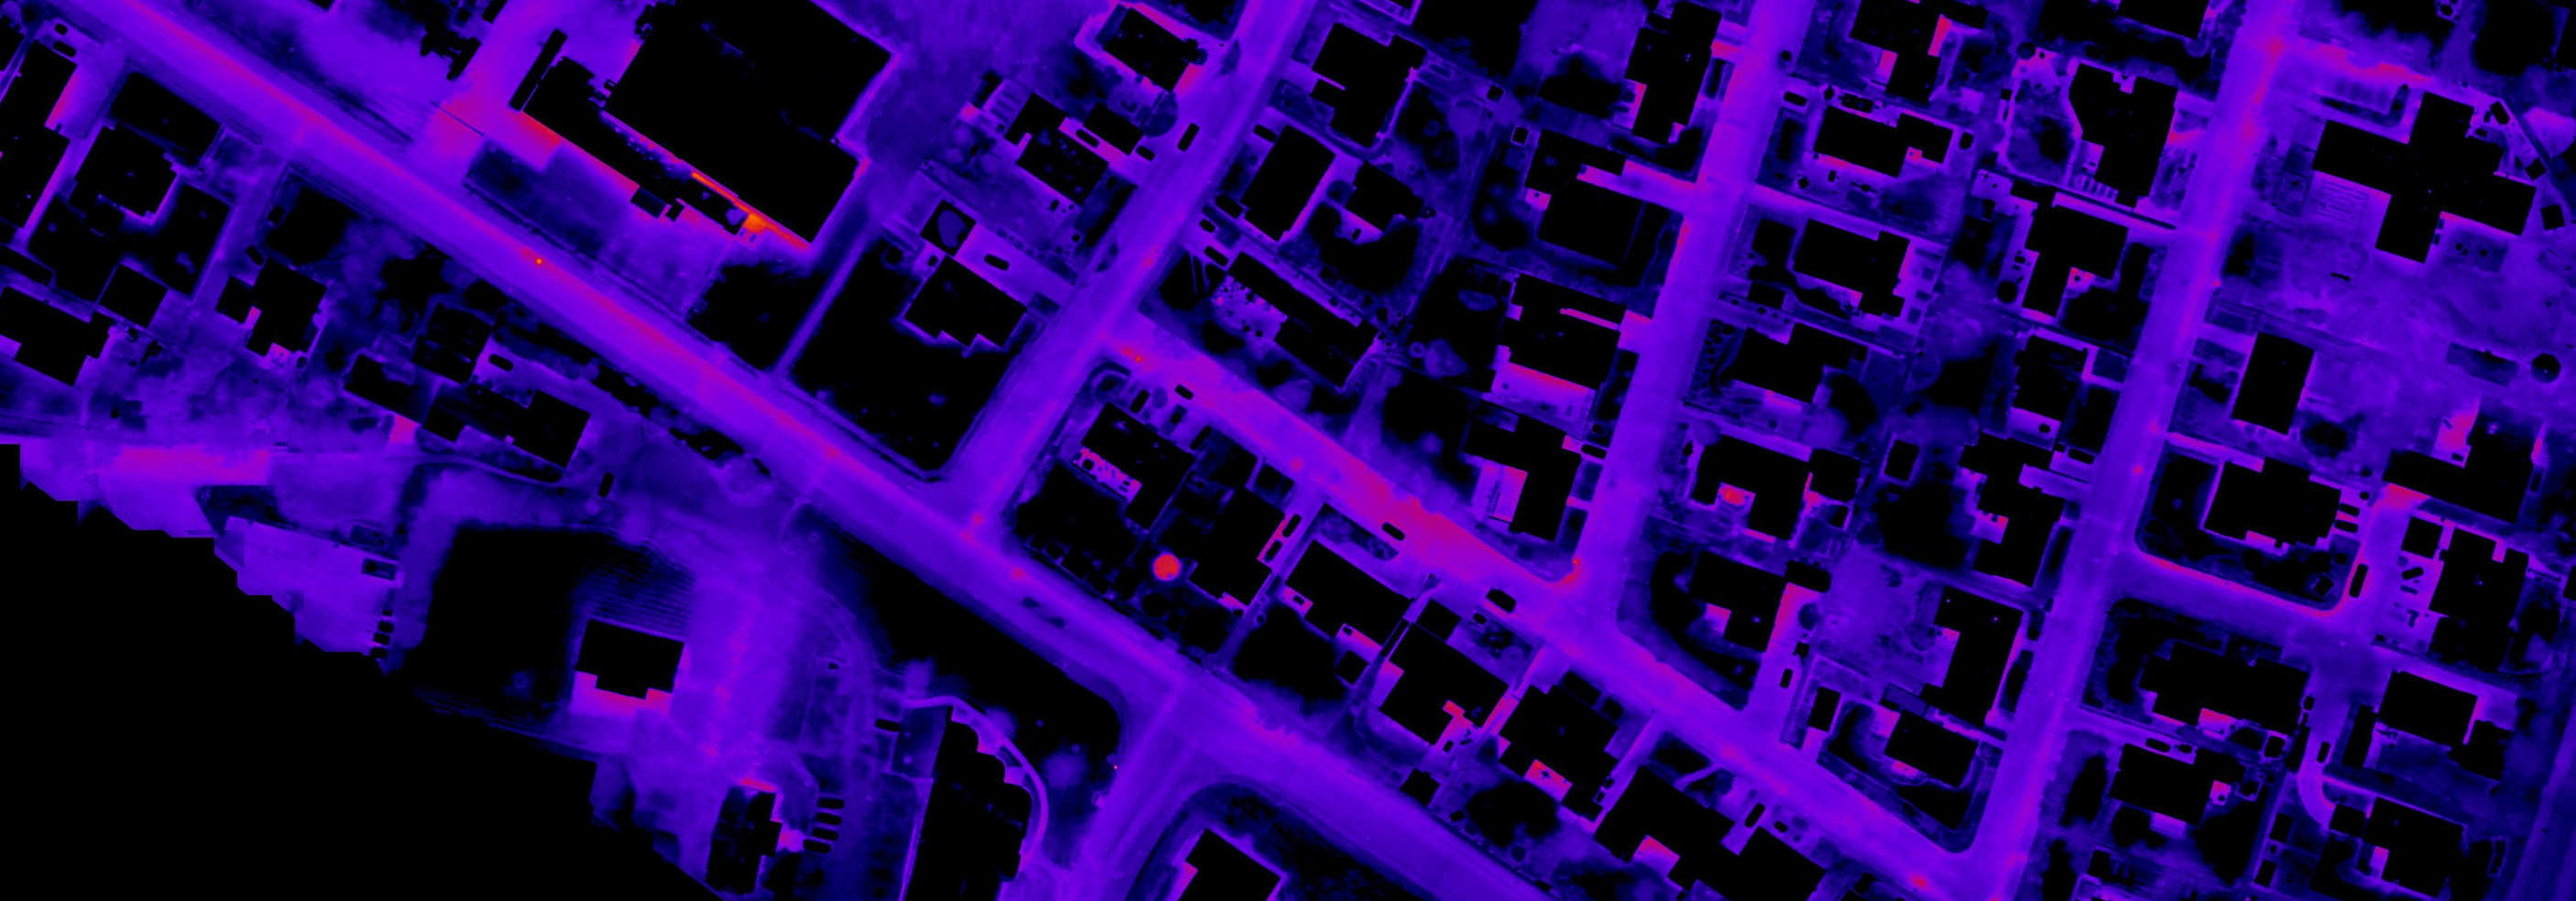 Drone Thermal Mapping with ThermalCapture and Icaros OneButton 5 1